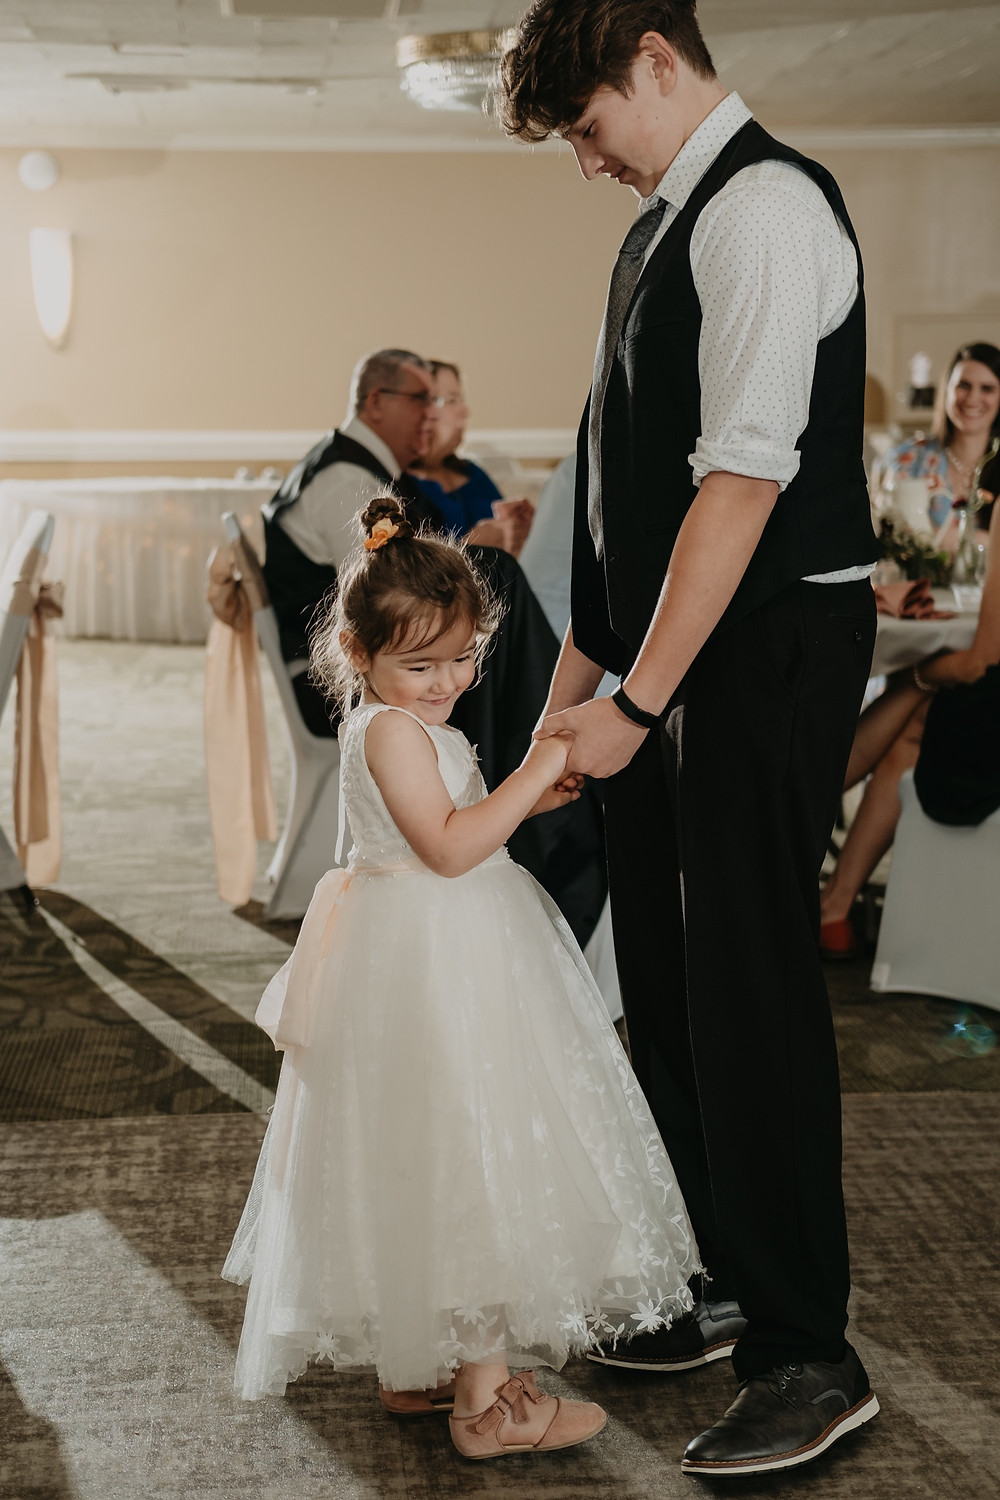 Wedding dance floor candids. Photographed by Nicole Leanne Photography.